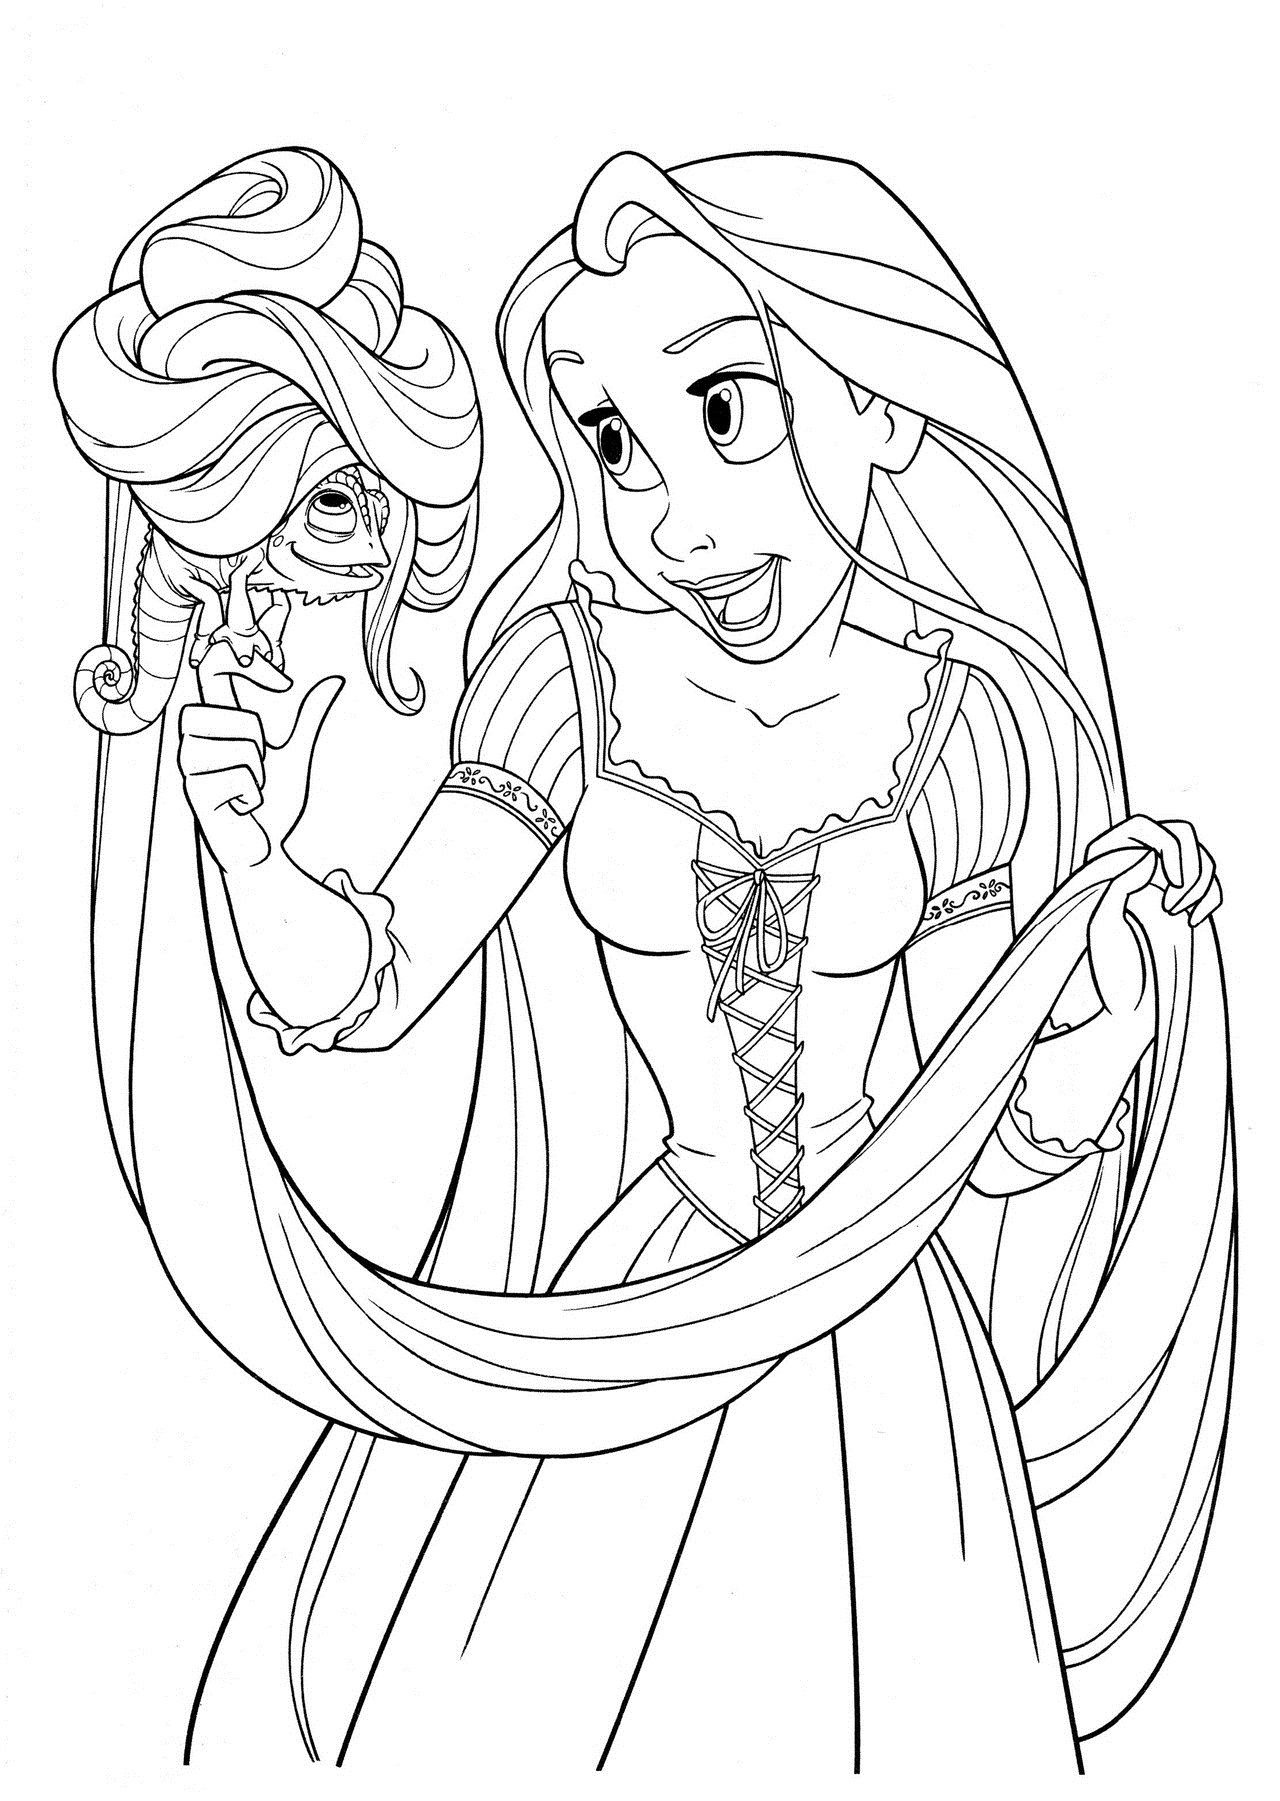 Free Printable Tangled Coloring Pages For Kids | Party Time - Free Printable Tangled